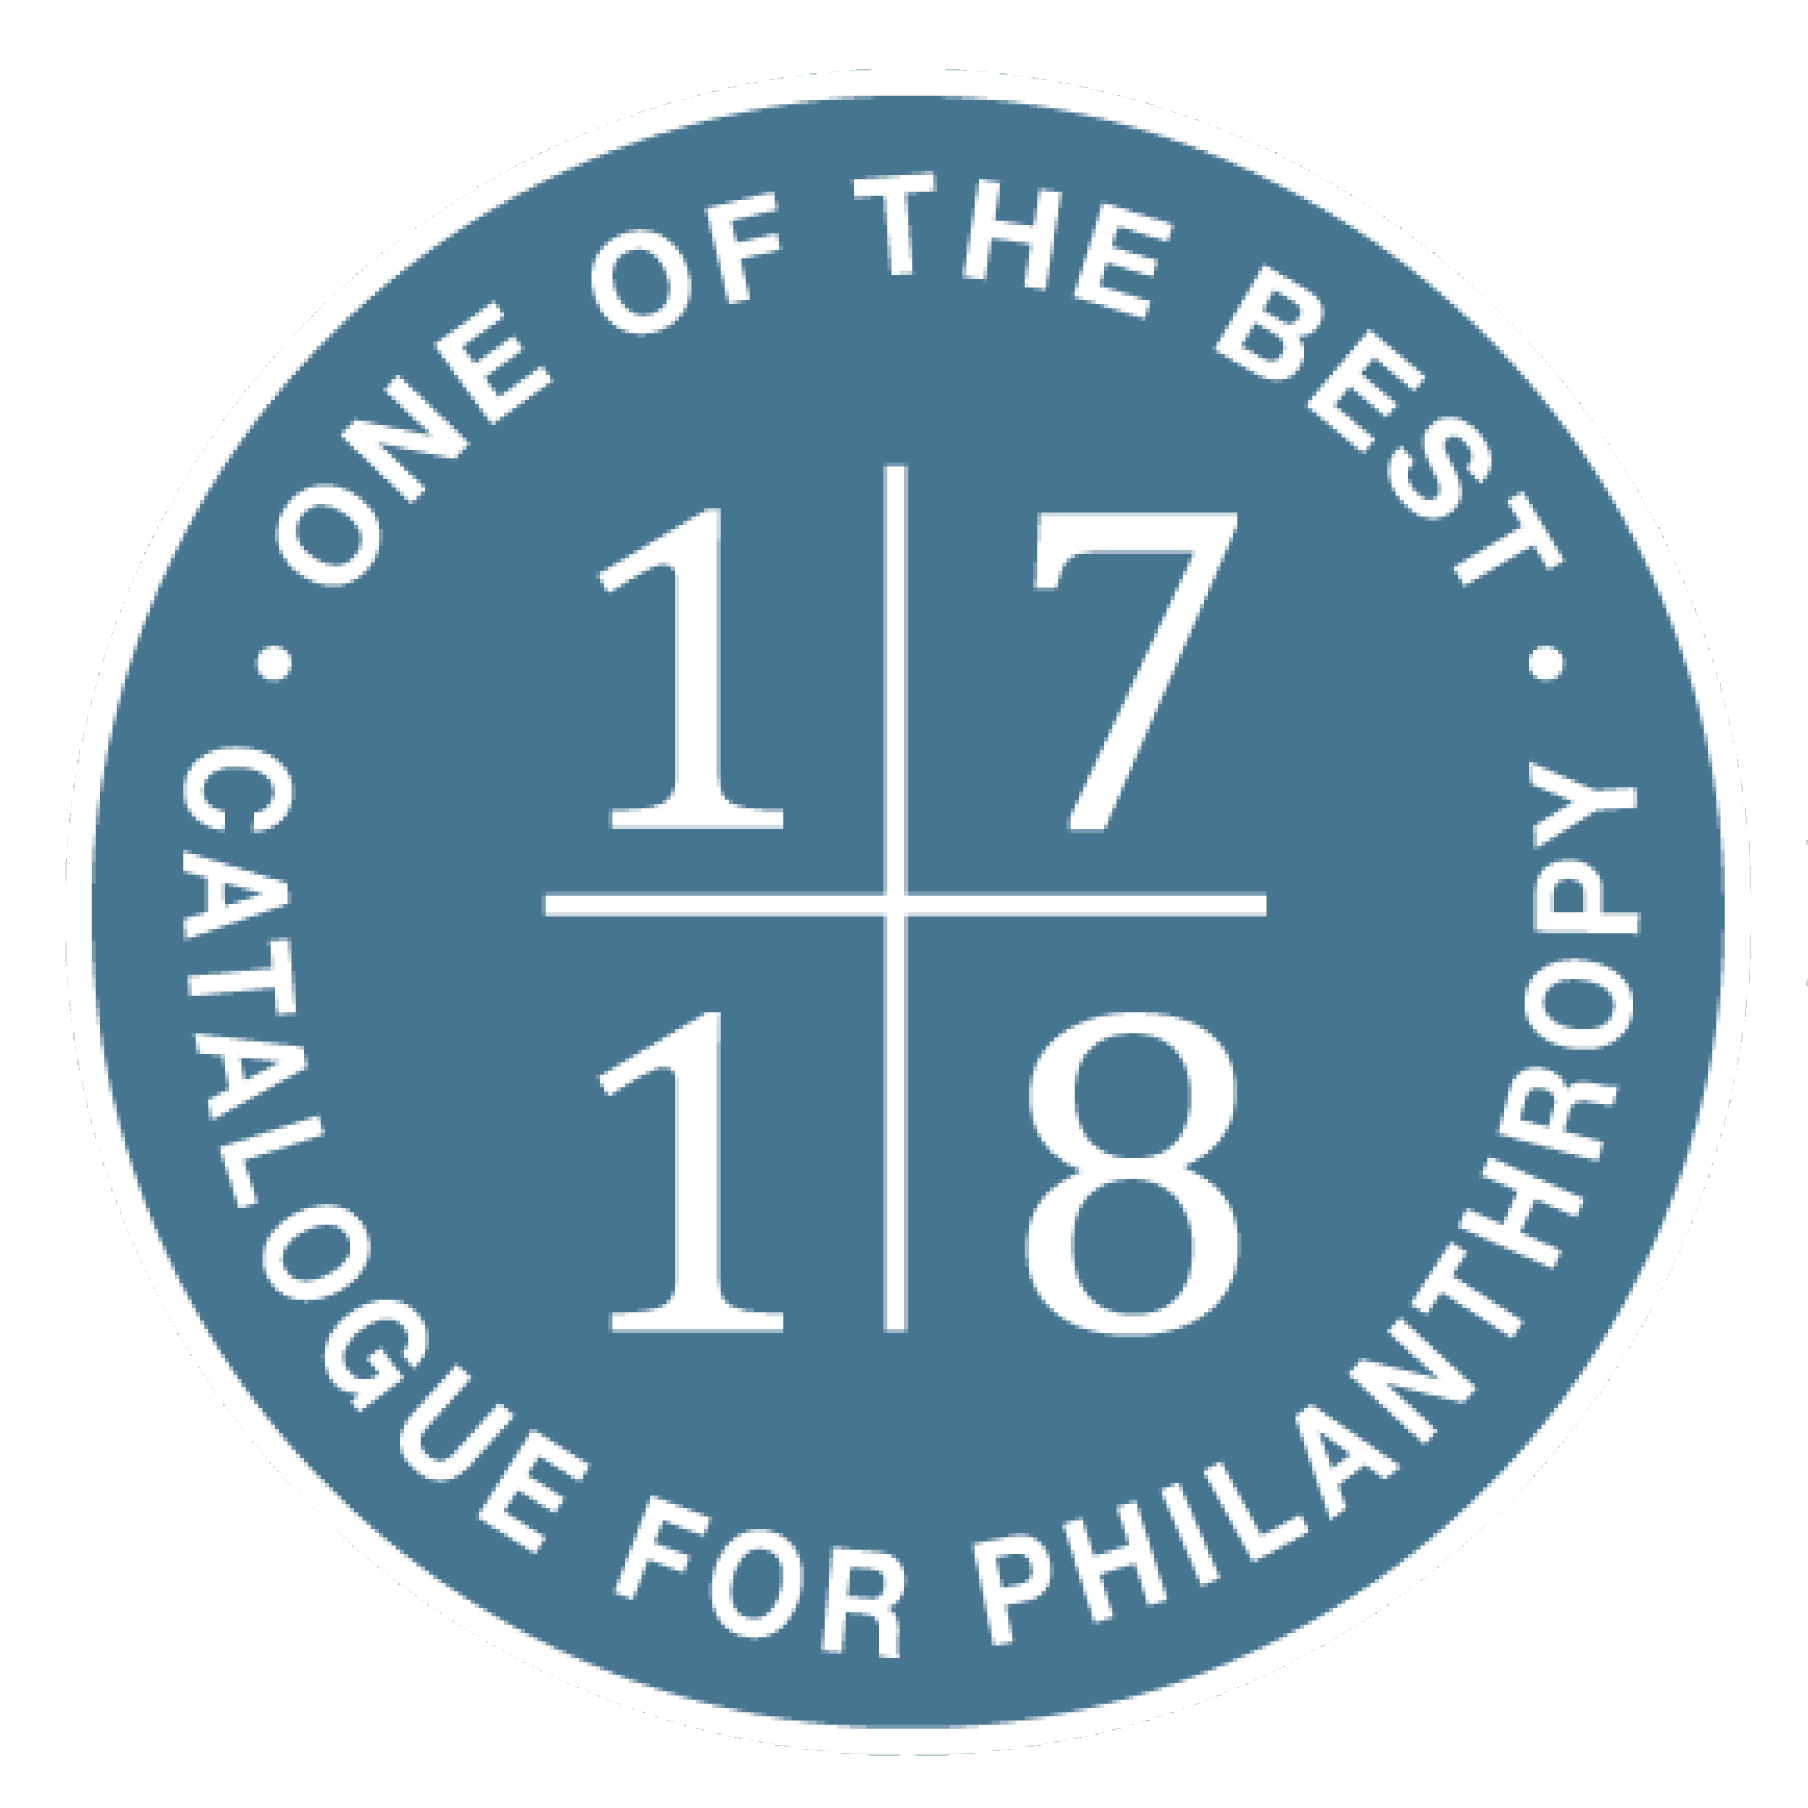 Catalougue for Philanthropy logo